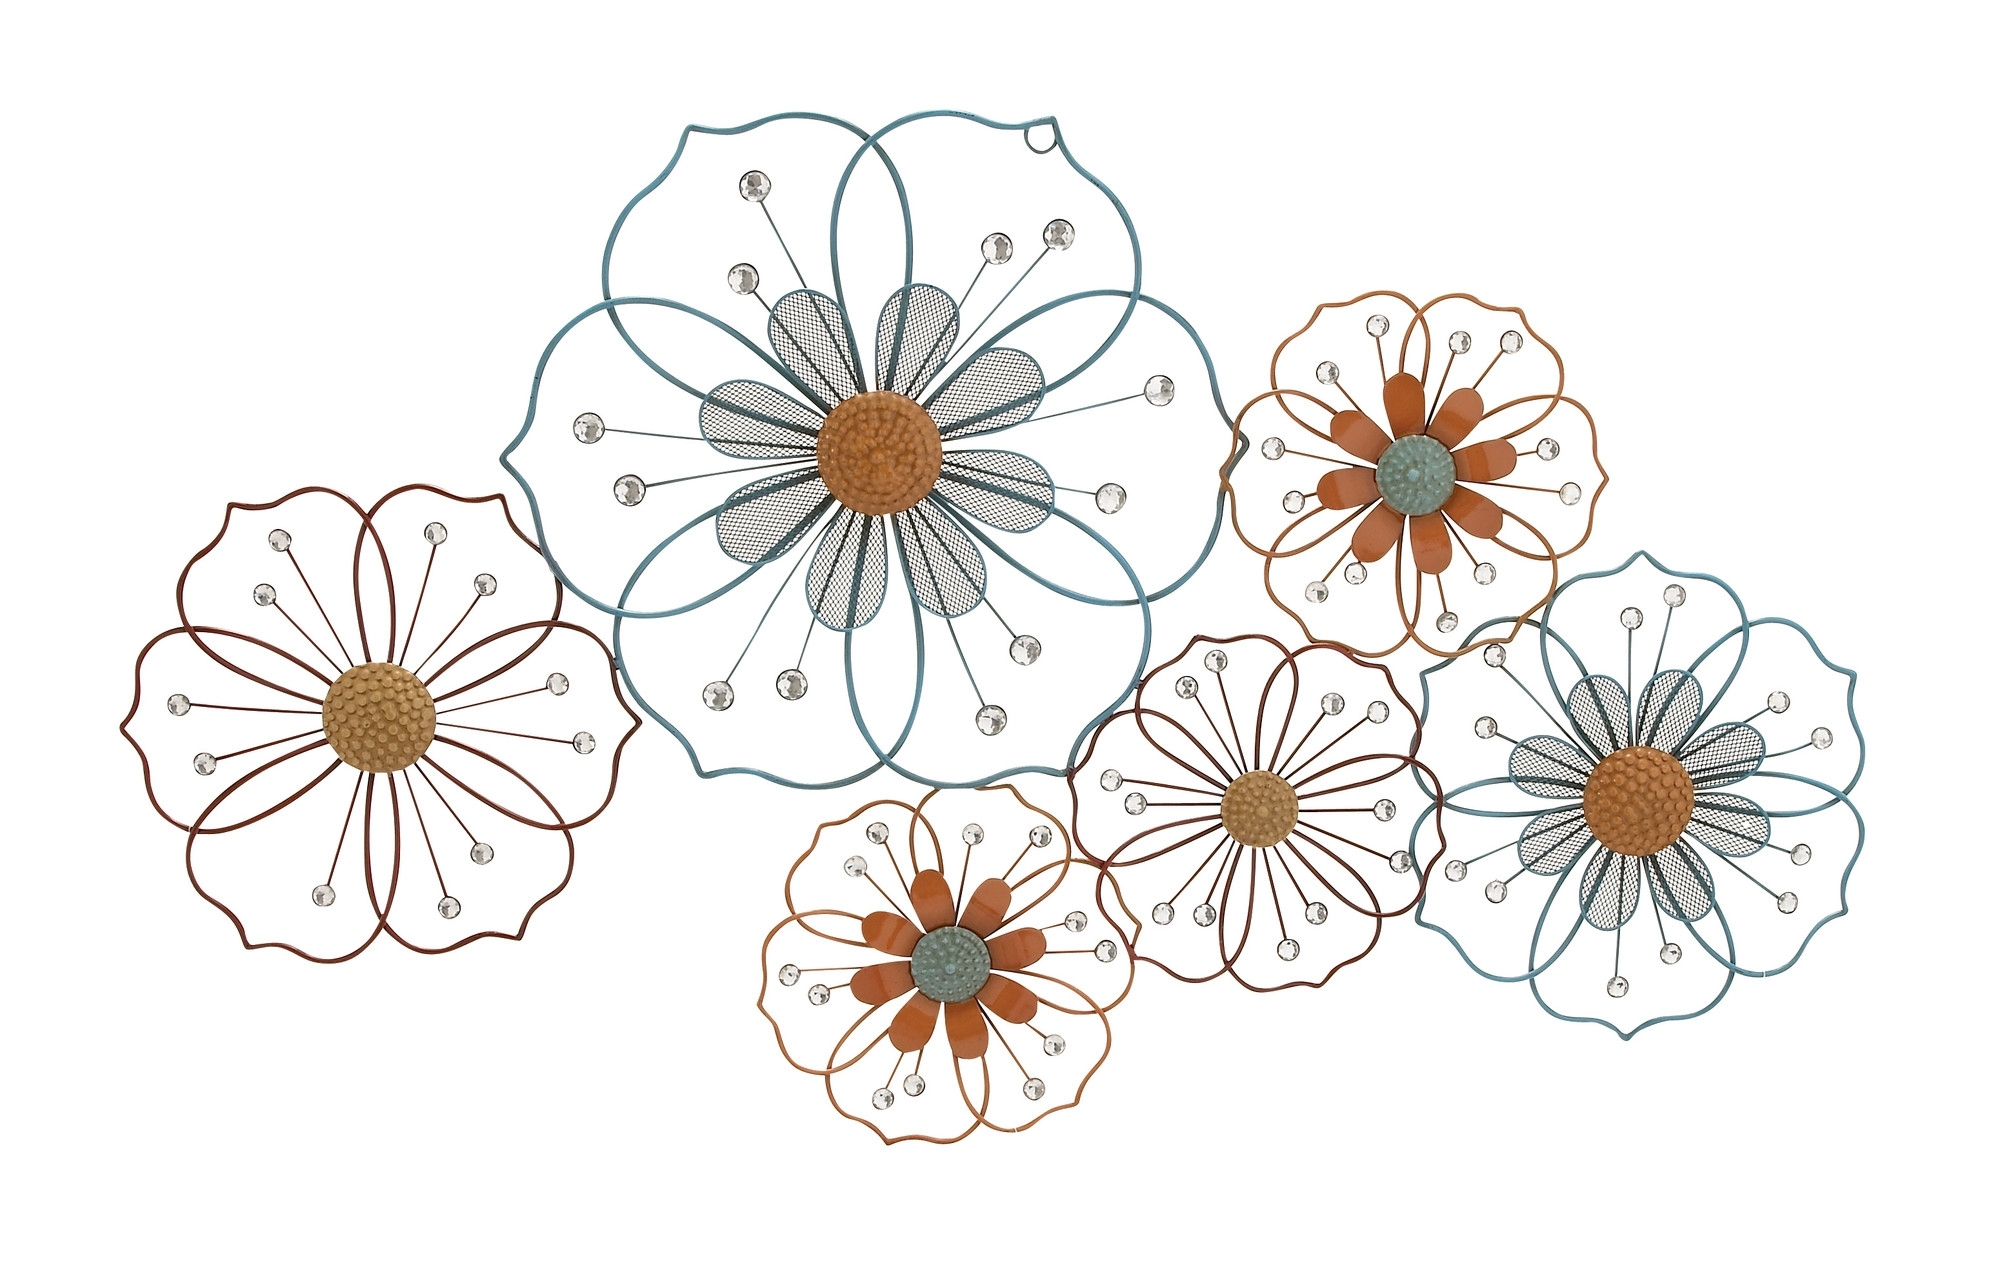 Large Flower Silhouettes – Floral Metal Wall Art With Regard To Most Up To Date Metal Flower Wall Art (View 6 of 15)